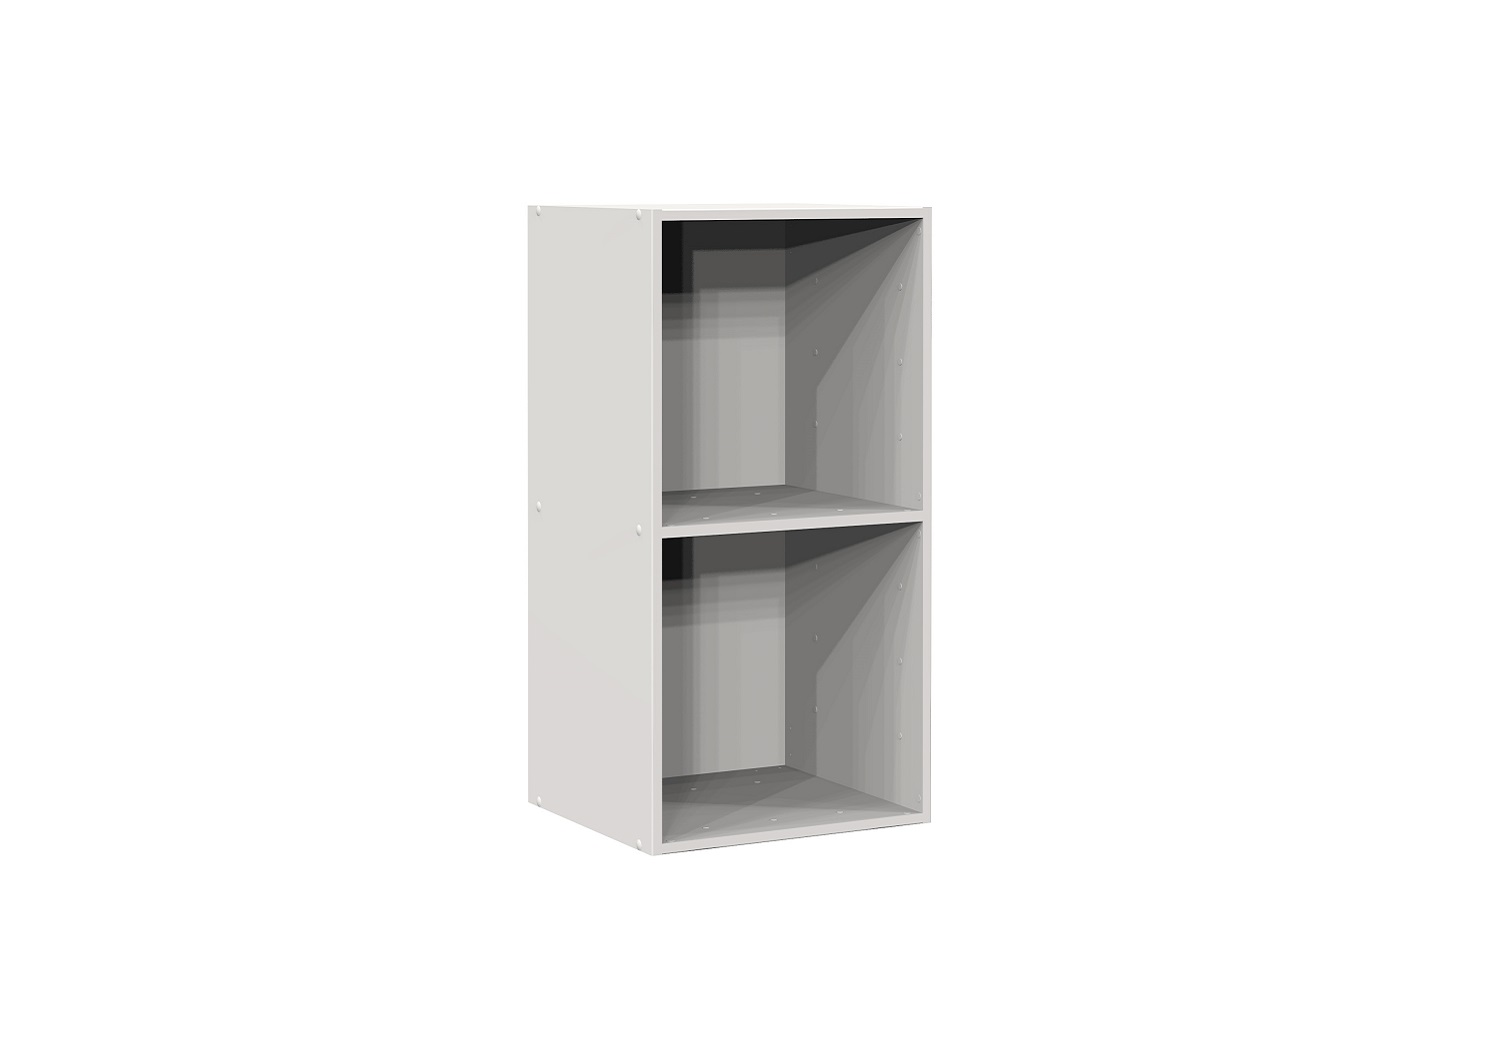 Bilrich Storage Furniture - Multi Kaz 2x1 Cube White